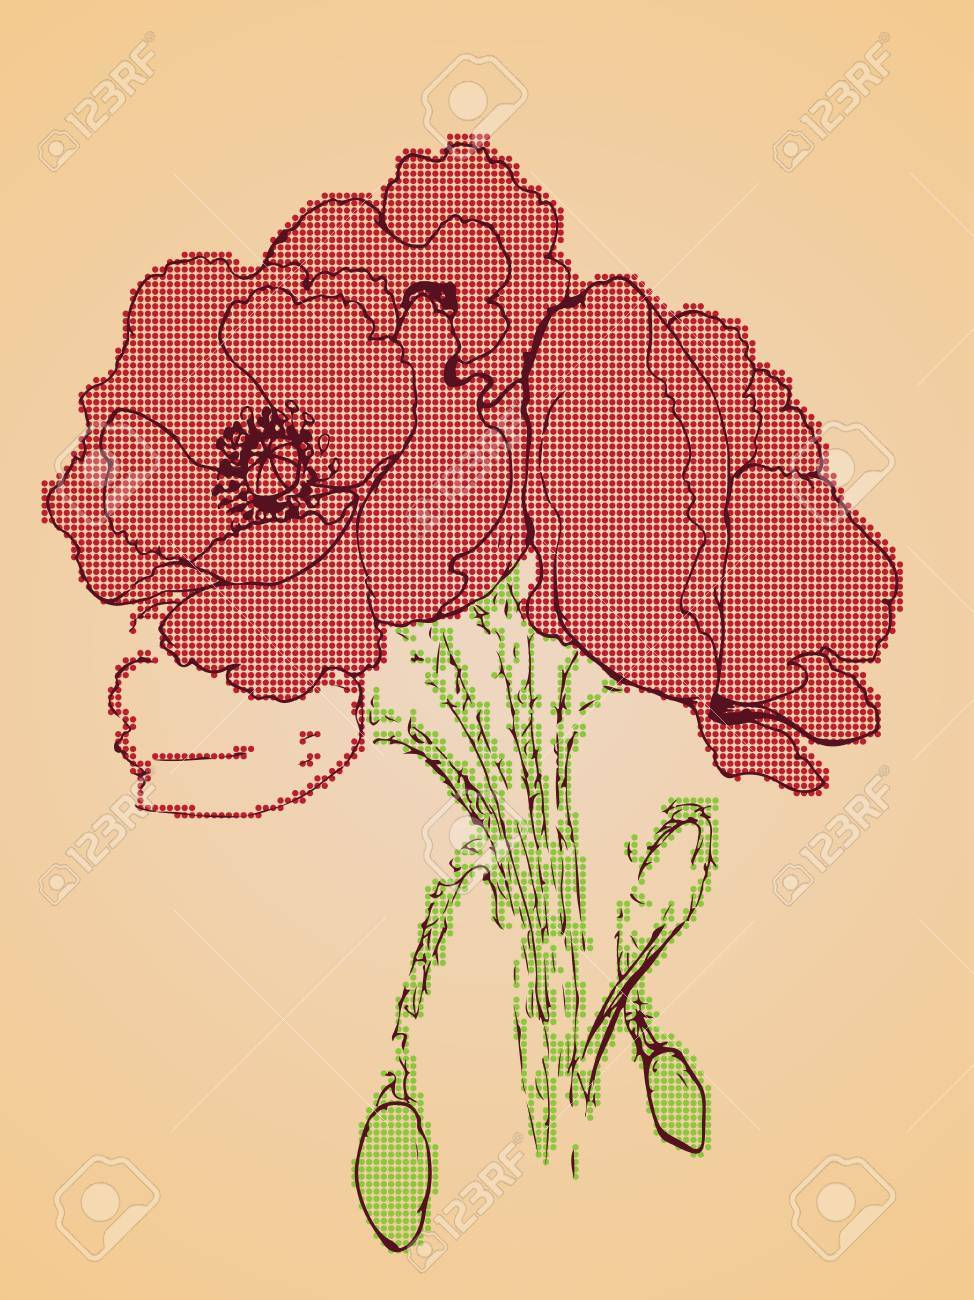 Grunge Sketch Of Poppy Flowers On Yellow Paper Background Royalty